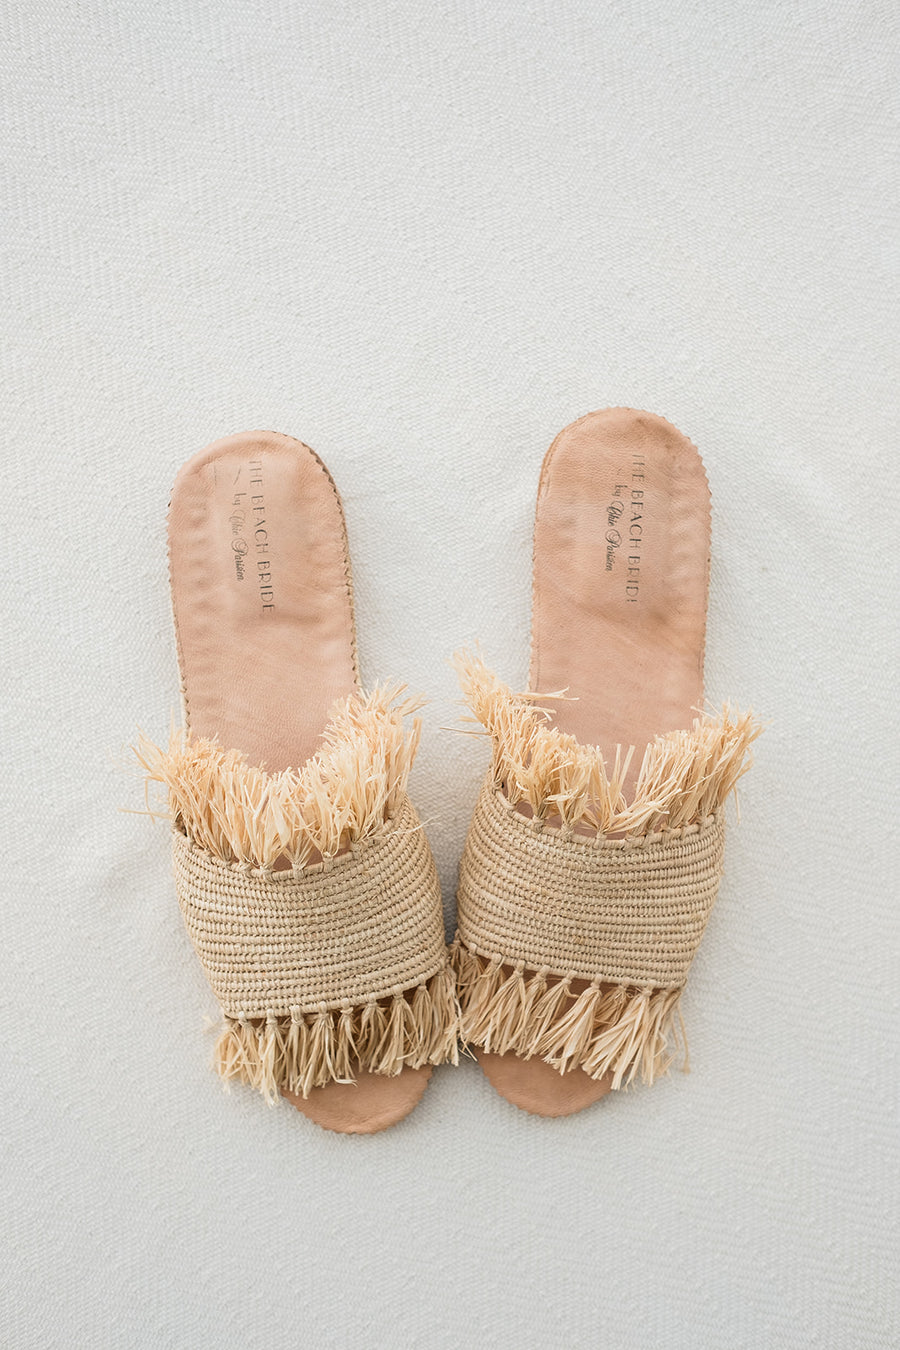 Raffia Fringe Beach Sandals - The Beach Bride by Chic Parisien, a destination for beach weddings, bachelorettes and honeymoons